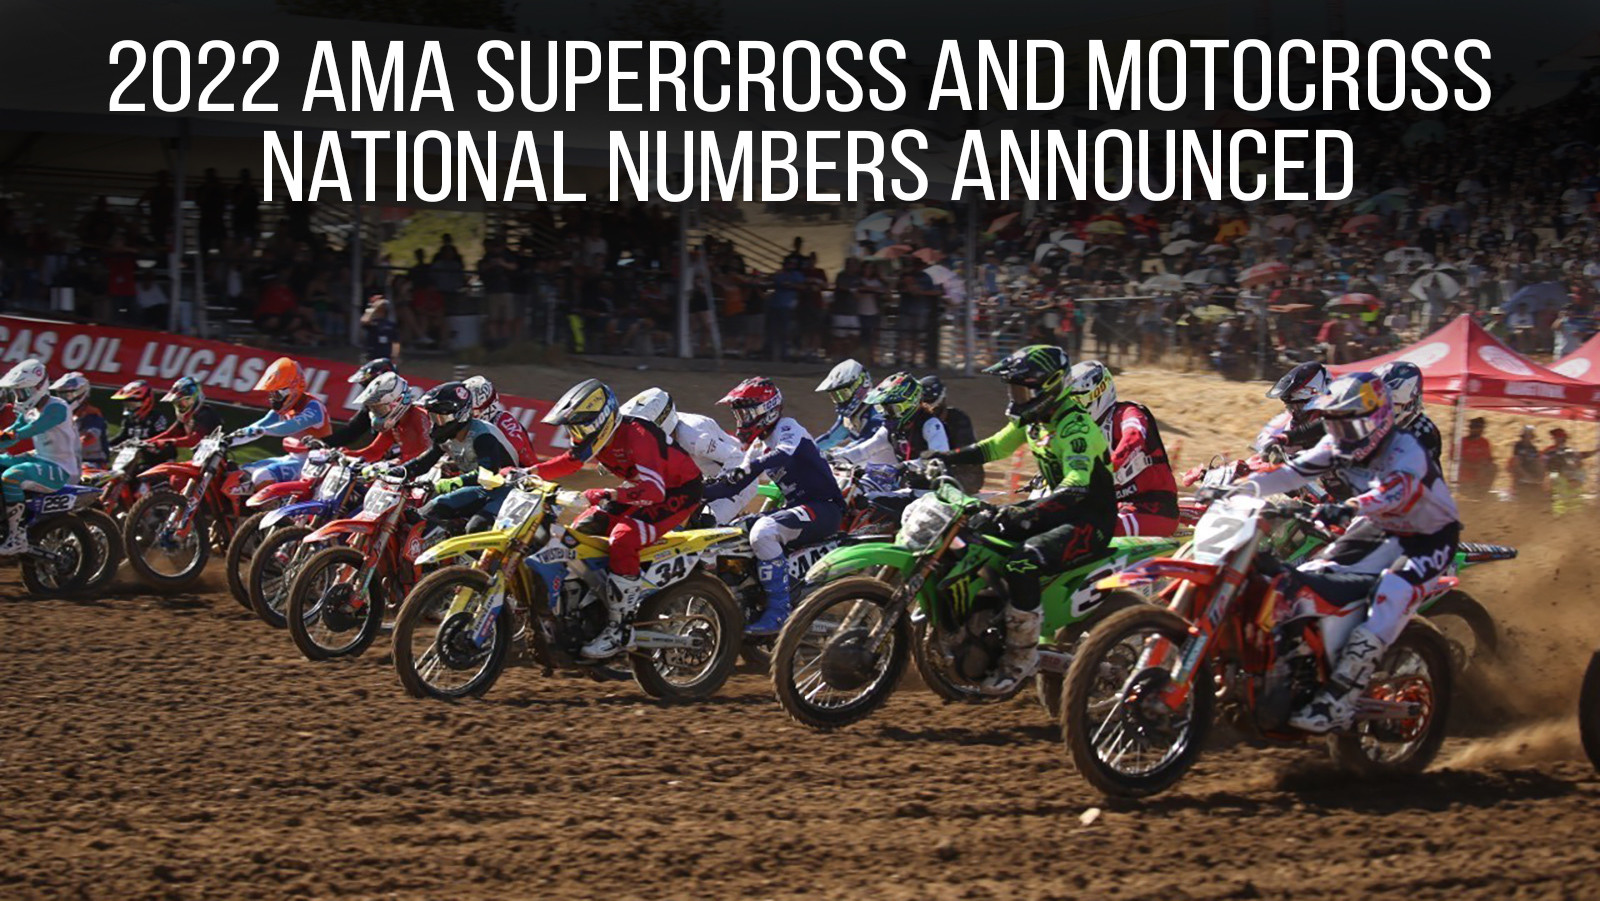 2022 AMA Supercross and Motocross National Numbers